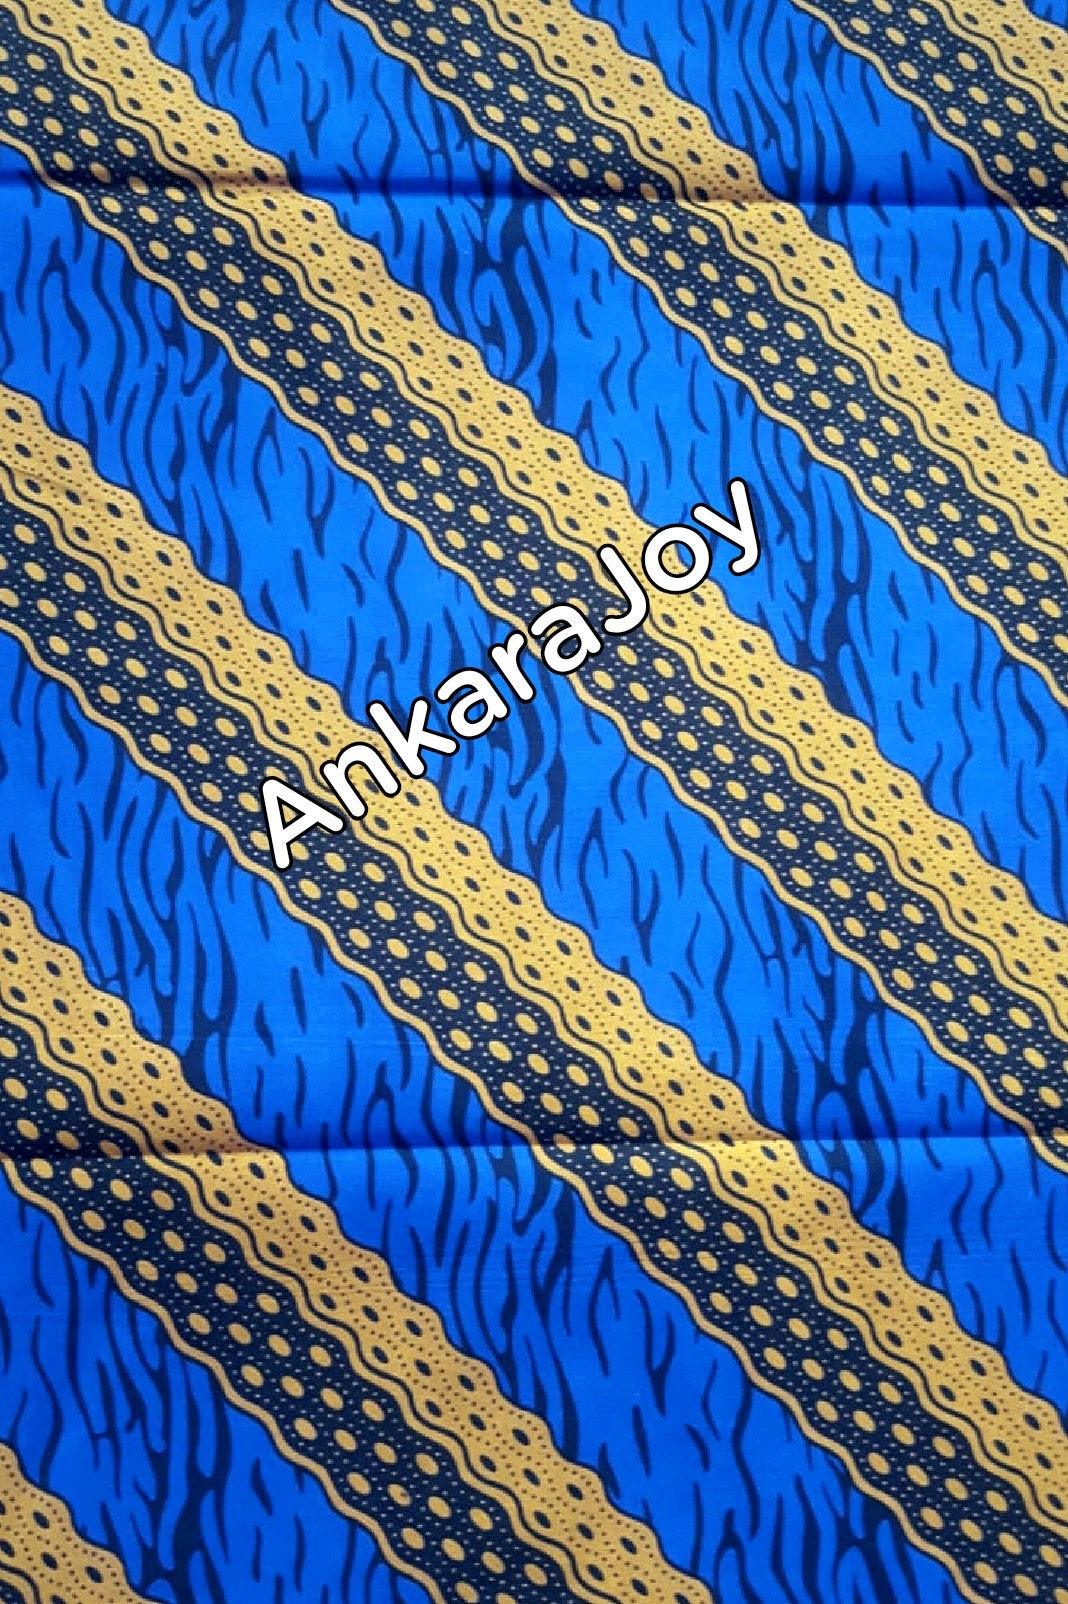 Per Yard African Wax Print Fabric--Vibrant Colours--High Quality Ankara Sold By The Yard 1 Yard 100/% Cotton Free UK Shipping.